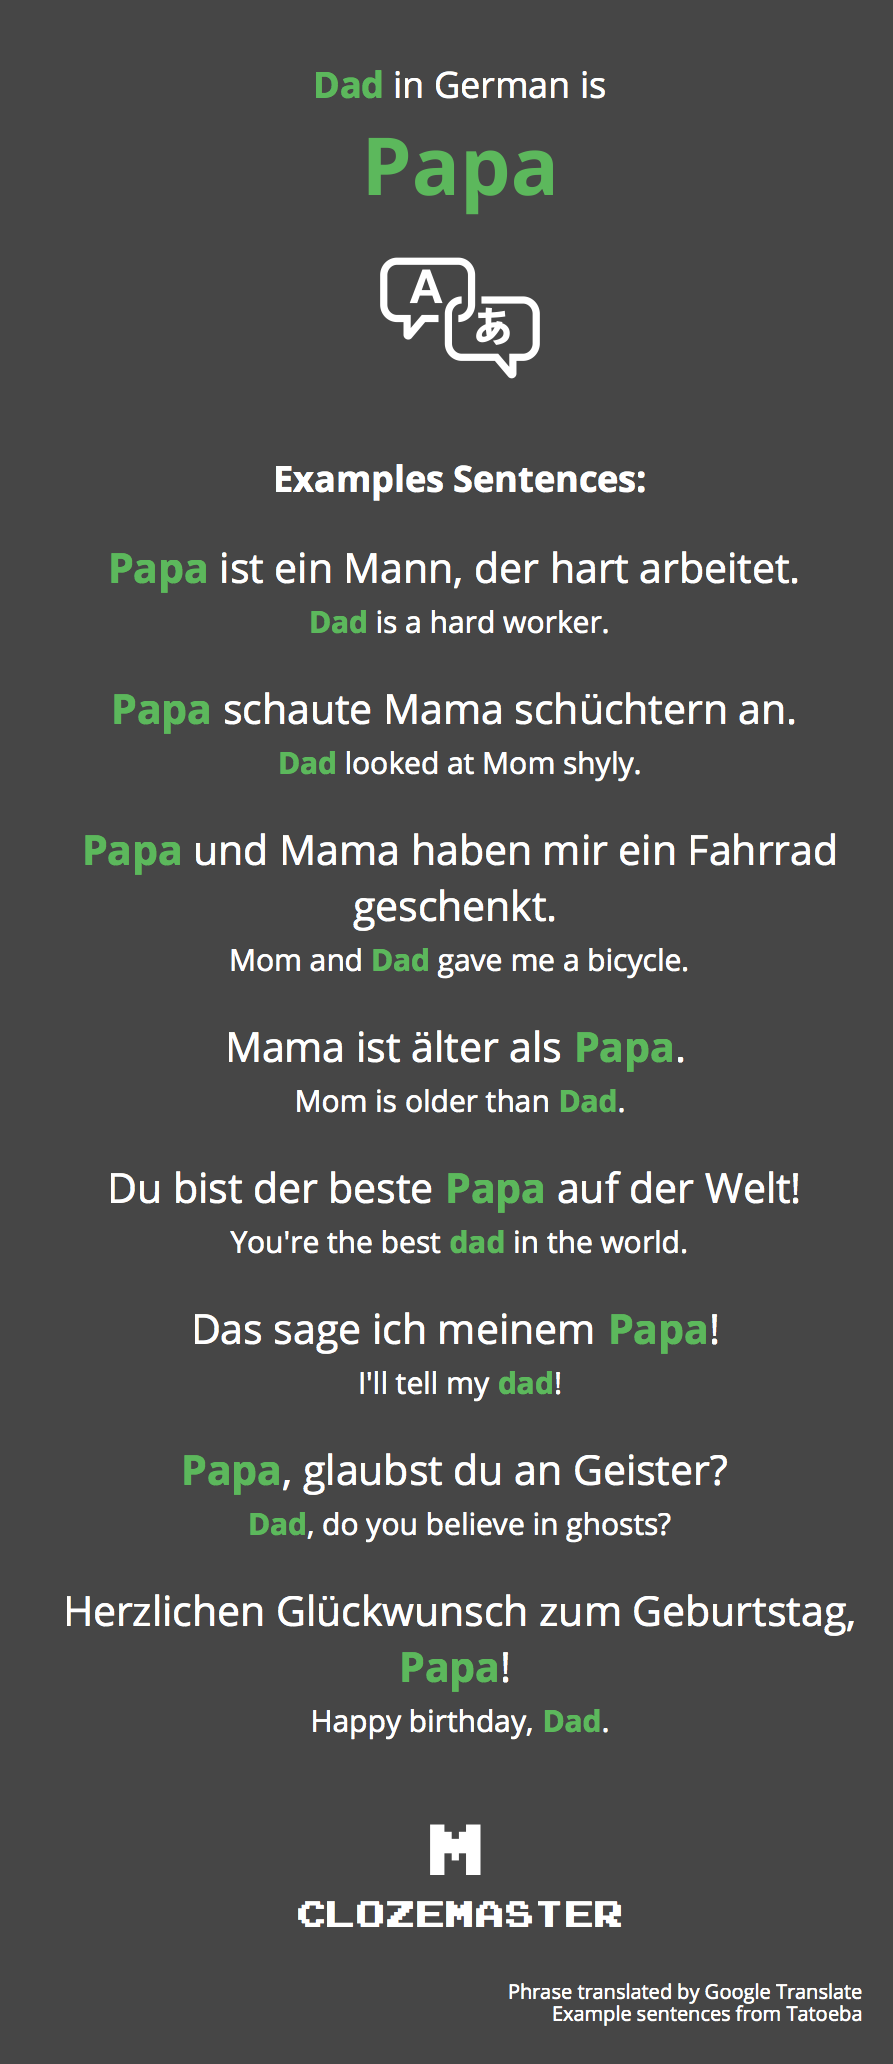 How To Say Dad In German Clozemaster